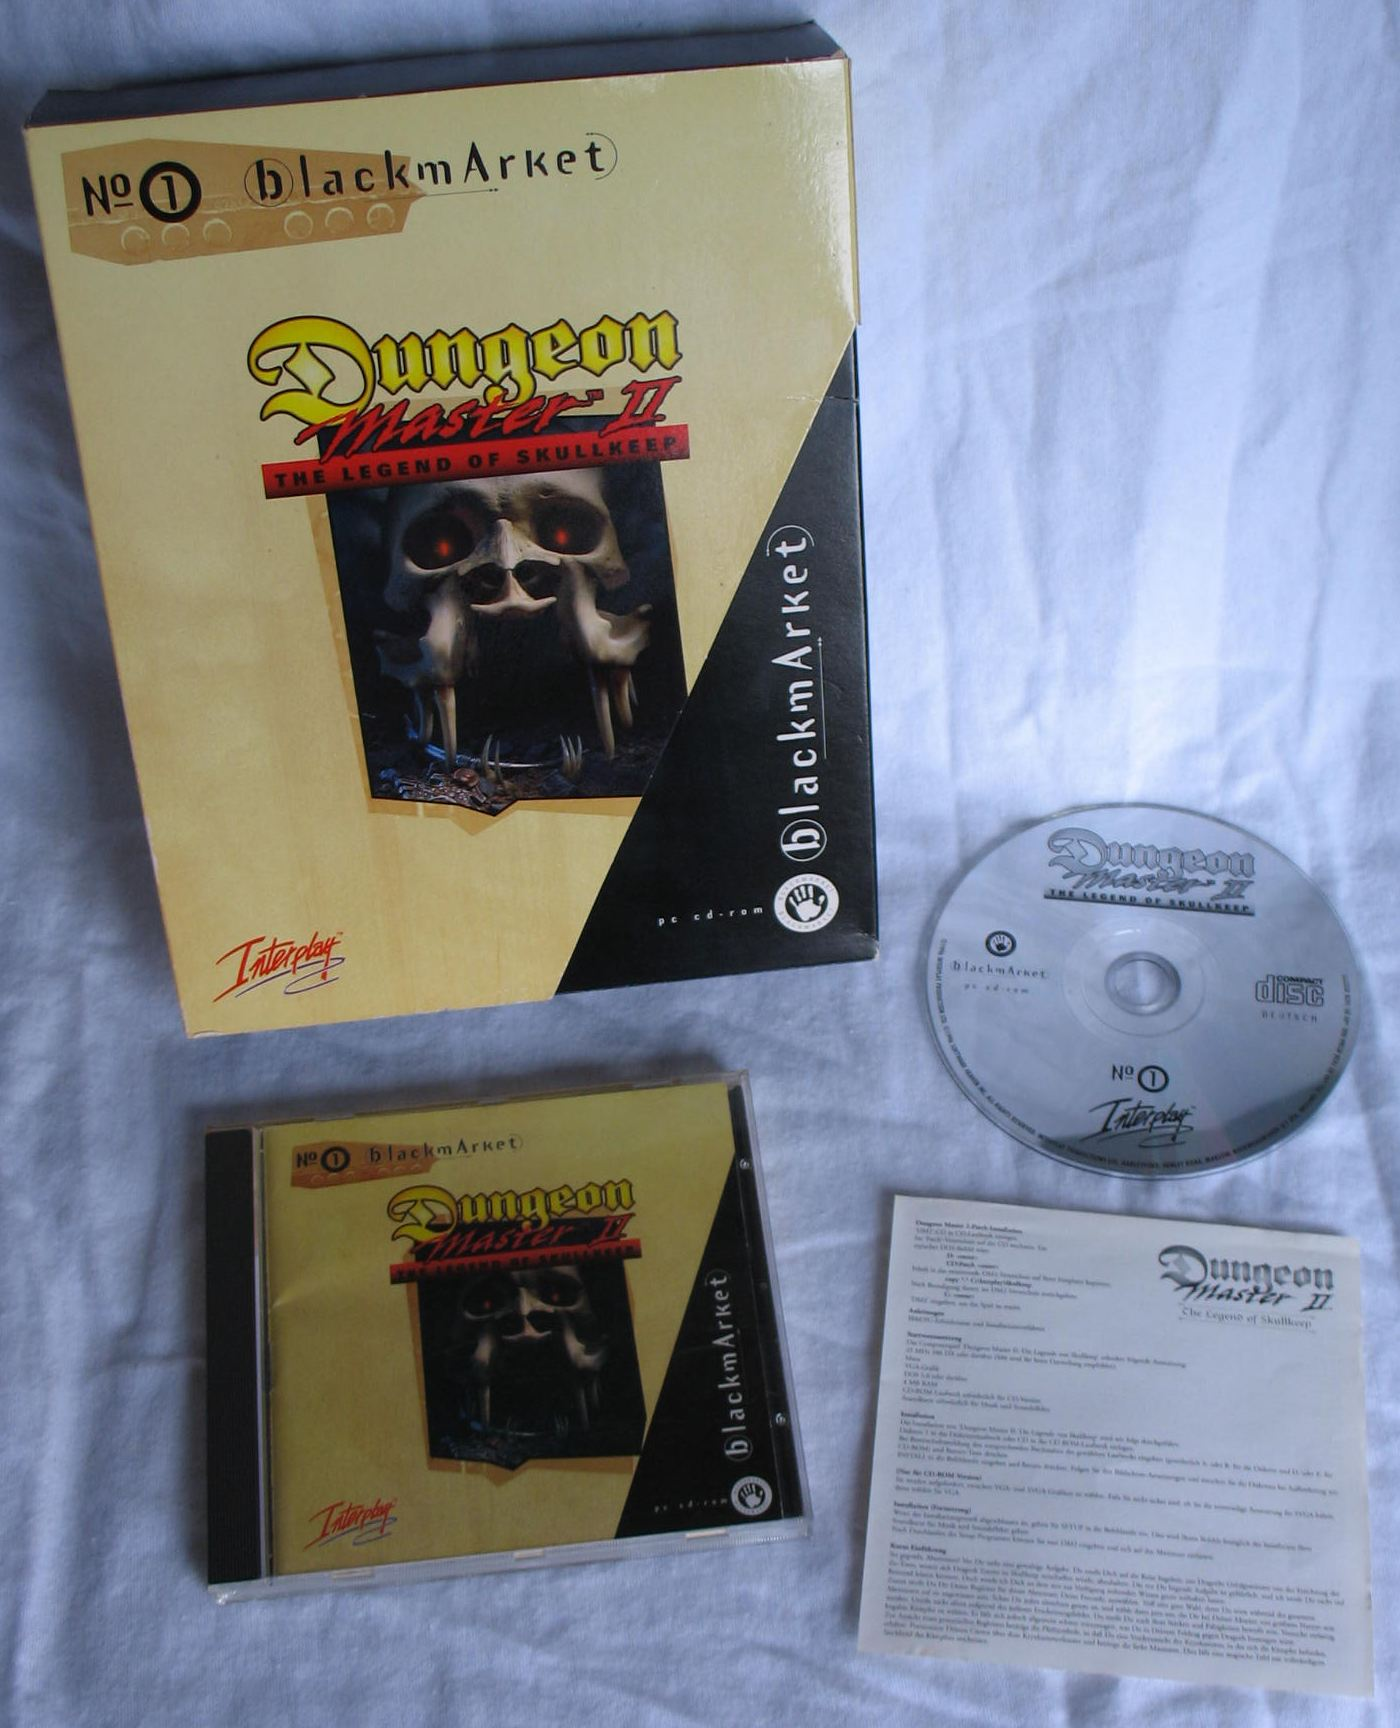 Game - Dungeon Master II - DE - PC - Blackmarket With Booklet - All - Overview - Photo